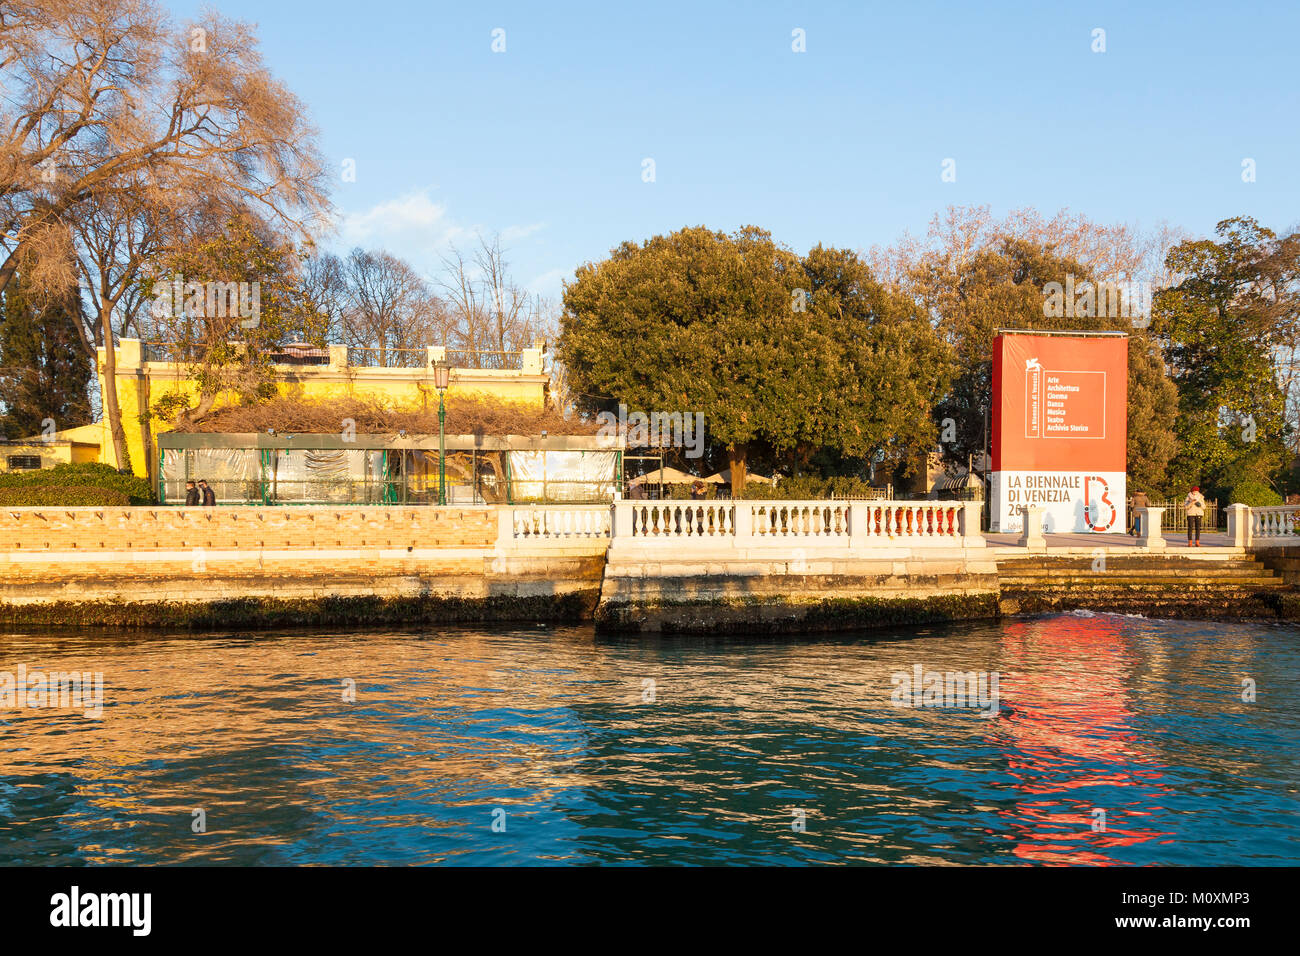 The Giardini Pubblici or Bieannale Gardens with thei signage and the popular Cafe Paradiso at sunset from the lagoon, Castello, Venice, Veneto, Italy Stock Photo